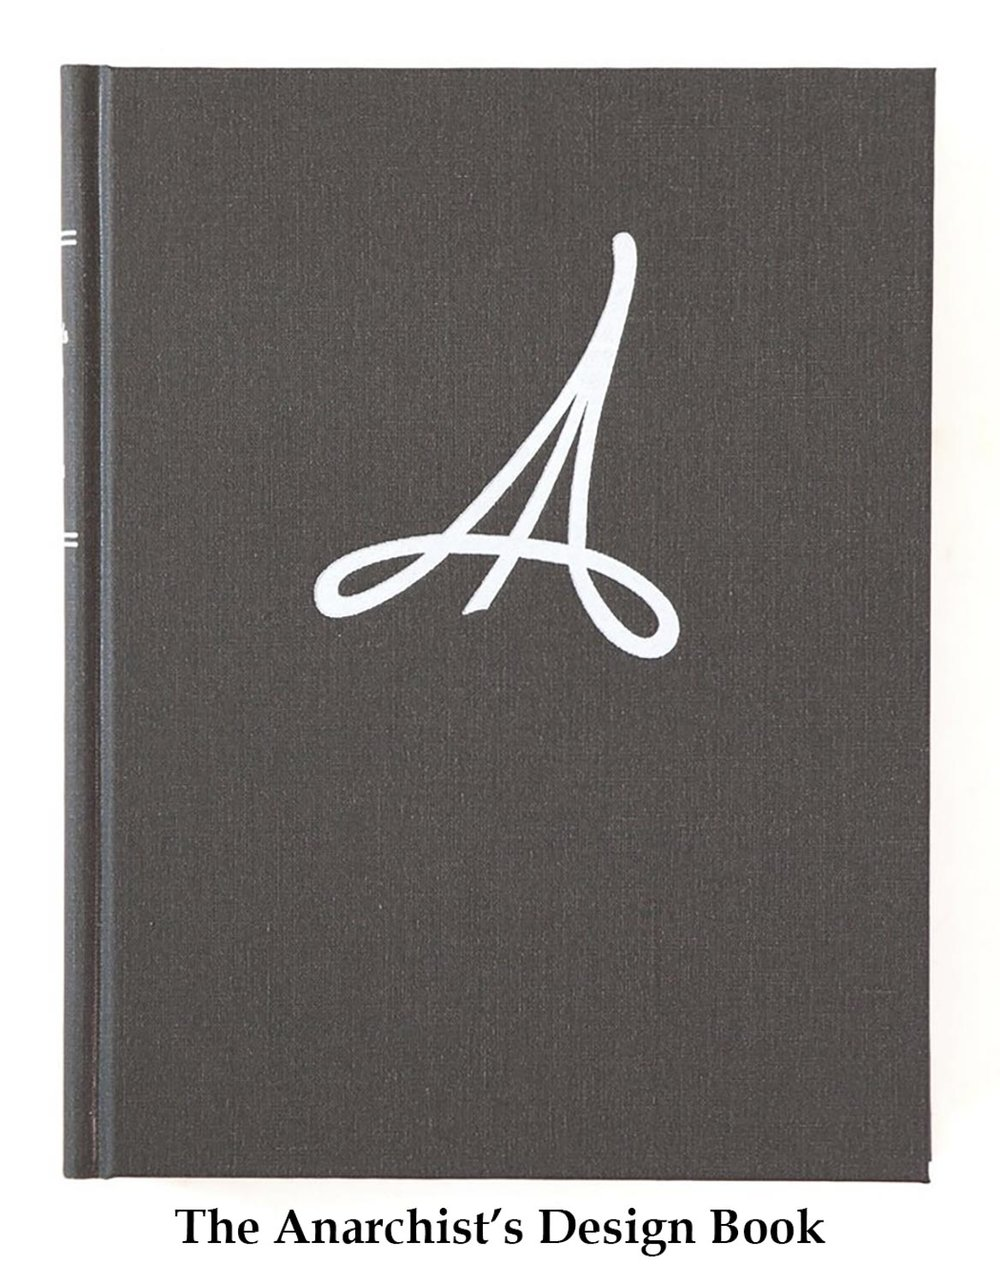 The Anarchist's Design Book by Christopher Schwarz